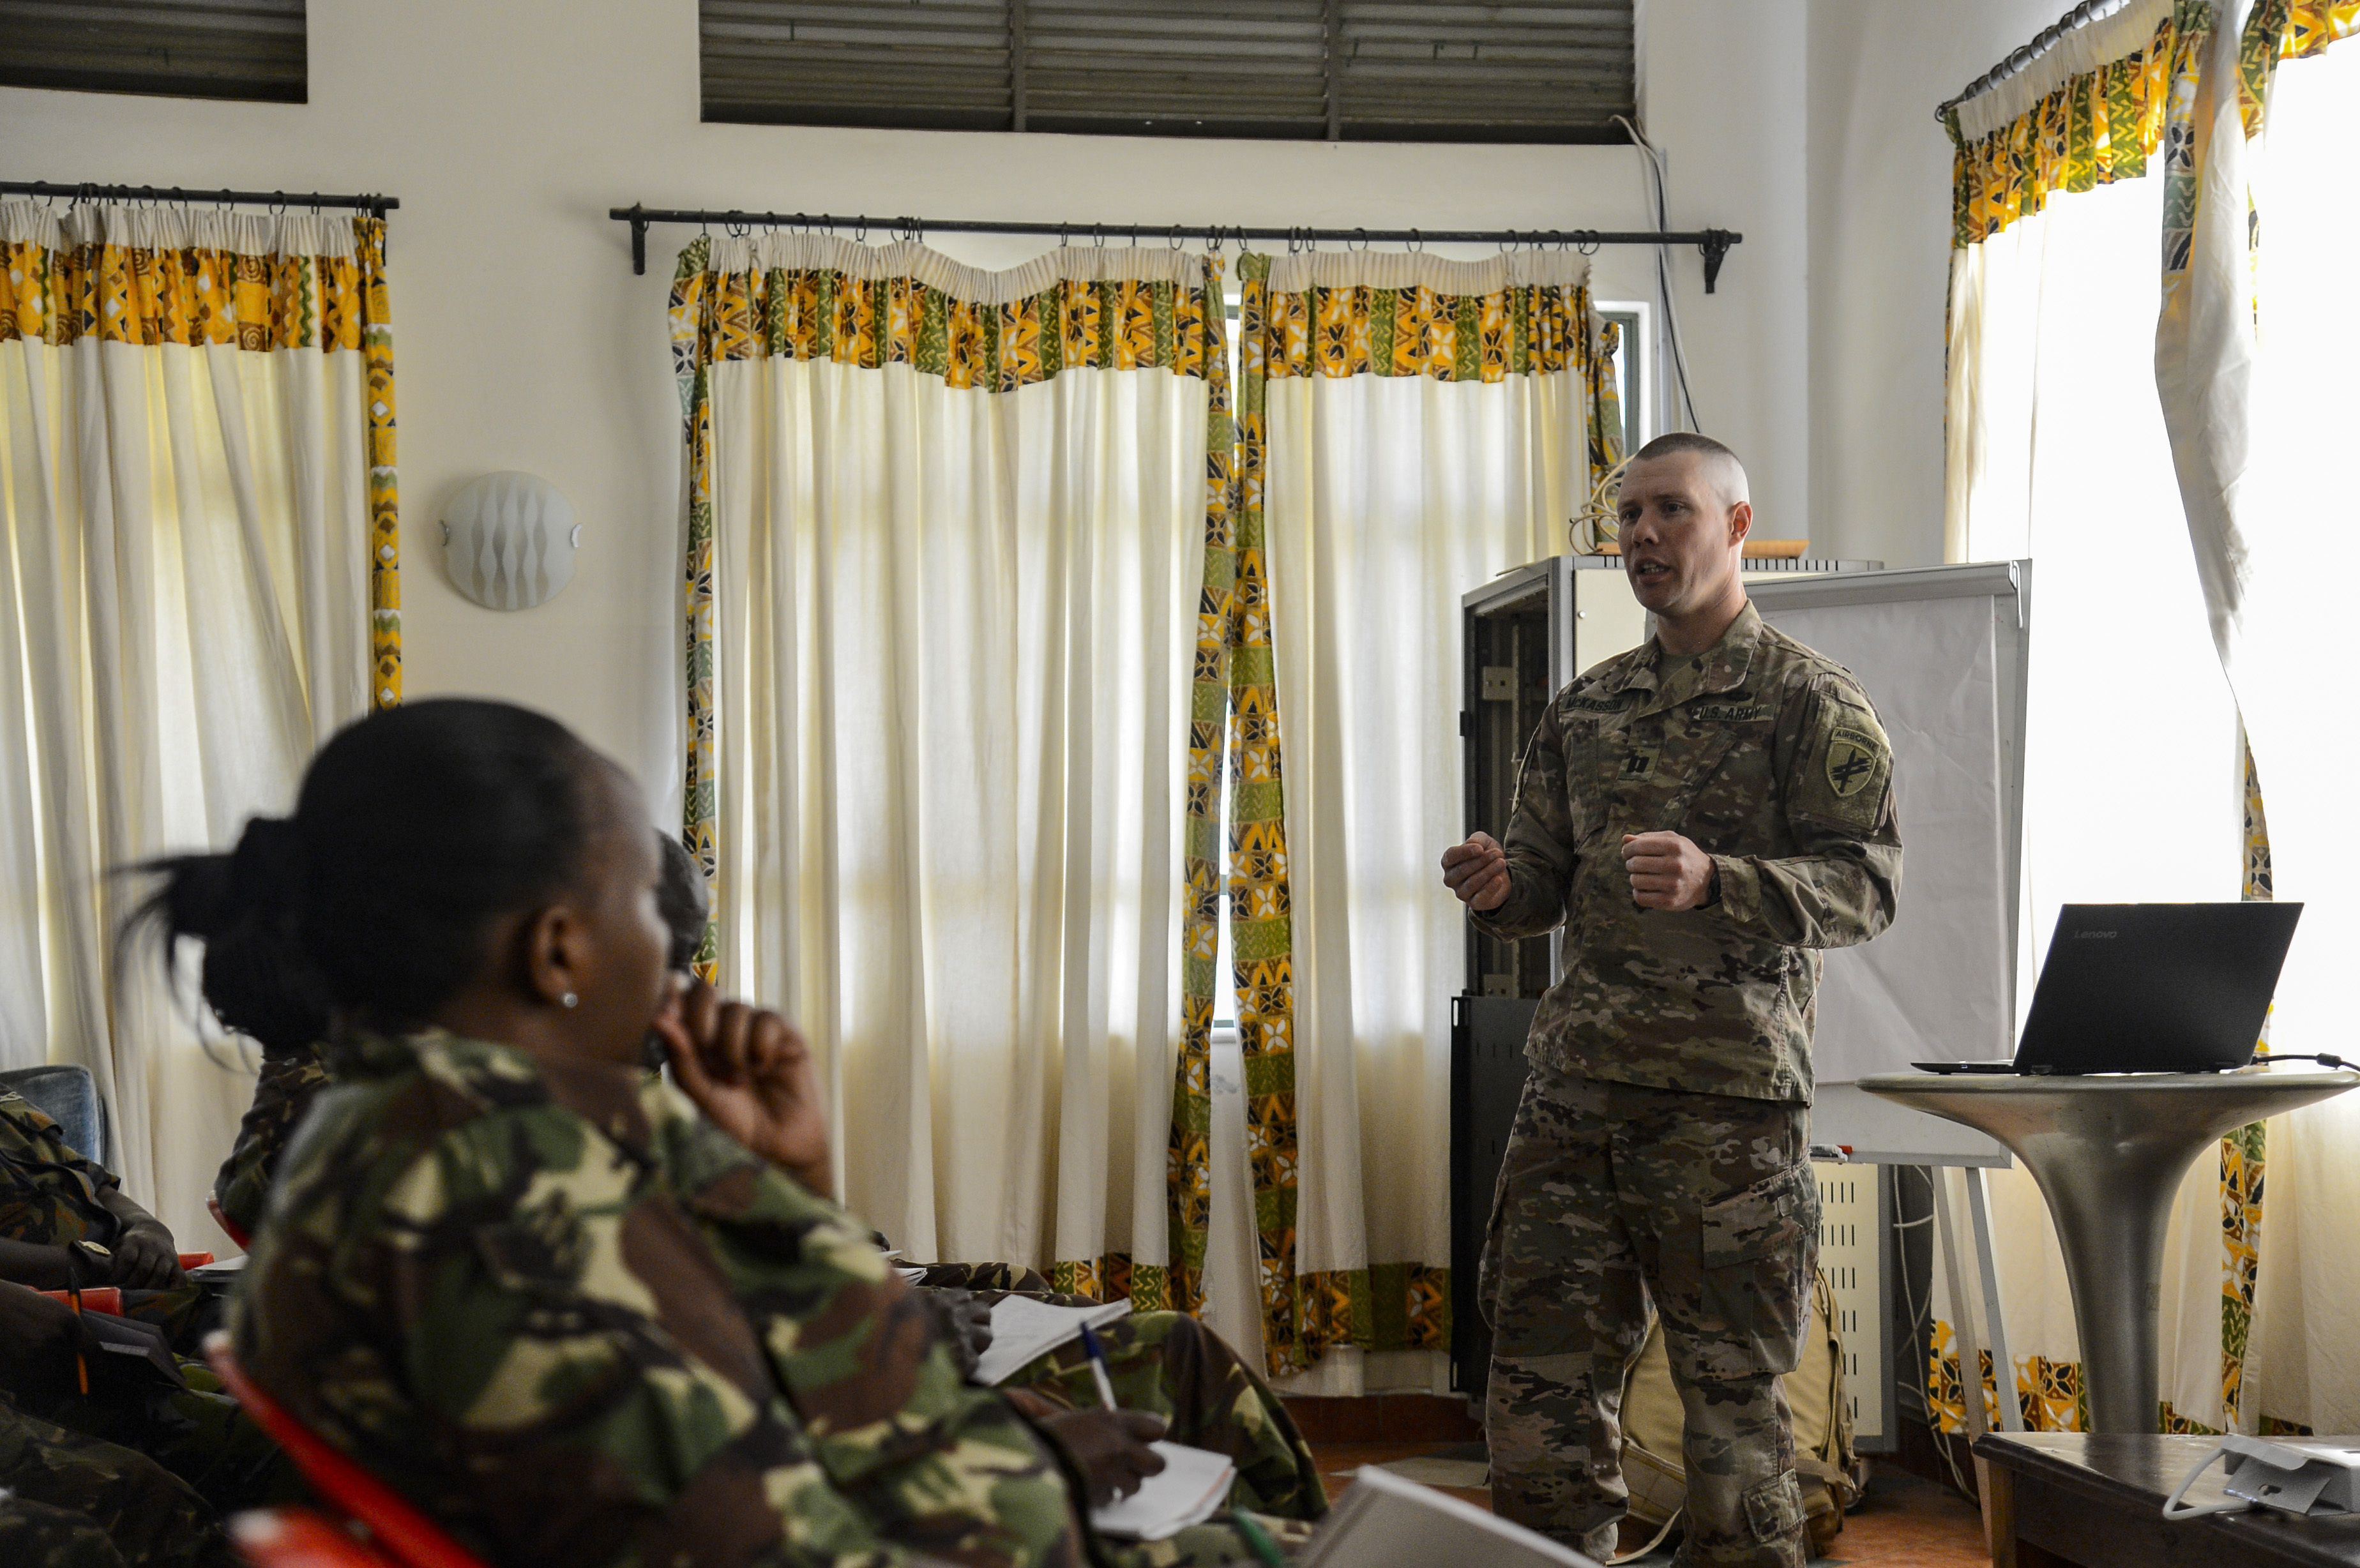 Army Capt. James McKasson, a veterinarian with the 404th Civil Affairs Battalion's Functional Specialty Team, explains how to take proper canine vital signs for members of the Kenyan Defense Force's 1st Canine Regiment during a Military Working Dog knowledge exchange, in Nairobi, Kenya, August 7, 2018. The exchange gave a chance for American and Kenyan forces to learn and work with each other to have a better understanding of each other's capabilities. (U.S. Navy Photo by Mass Communication Specialist 2nd Class Timothy M. Ahearn)